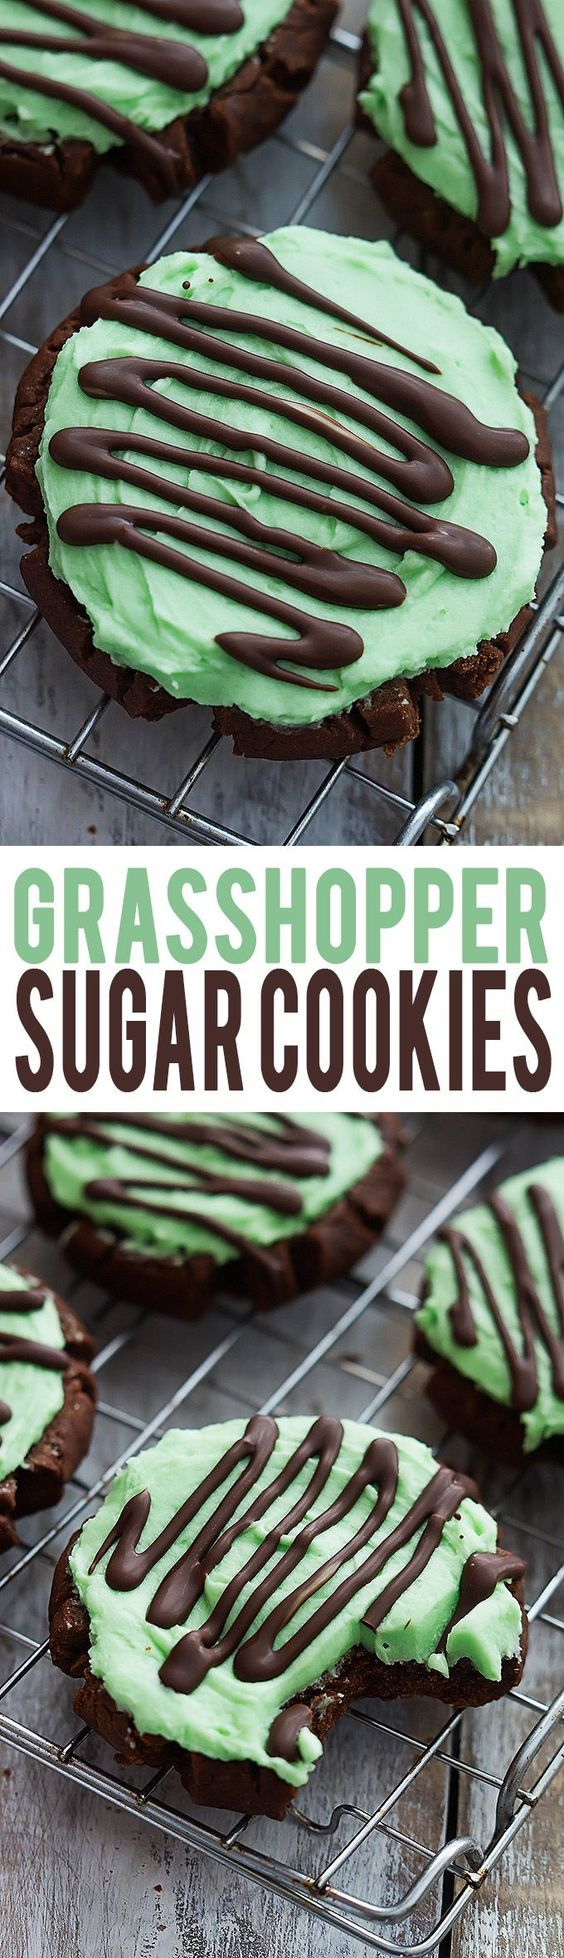 Grasshopper Sugar Cookies Recipe via Creme De La Crumb- moist chocolate sugar cookies with fluffy mint frosting, topped with Andes mint chocolate drizzle!